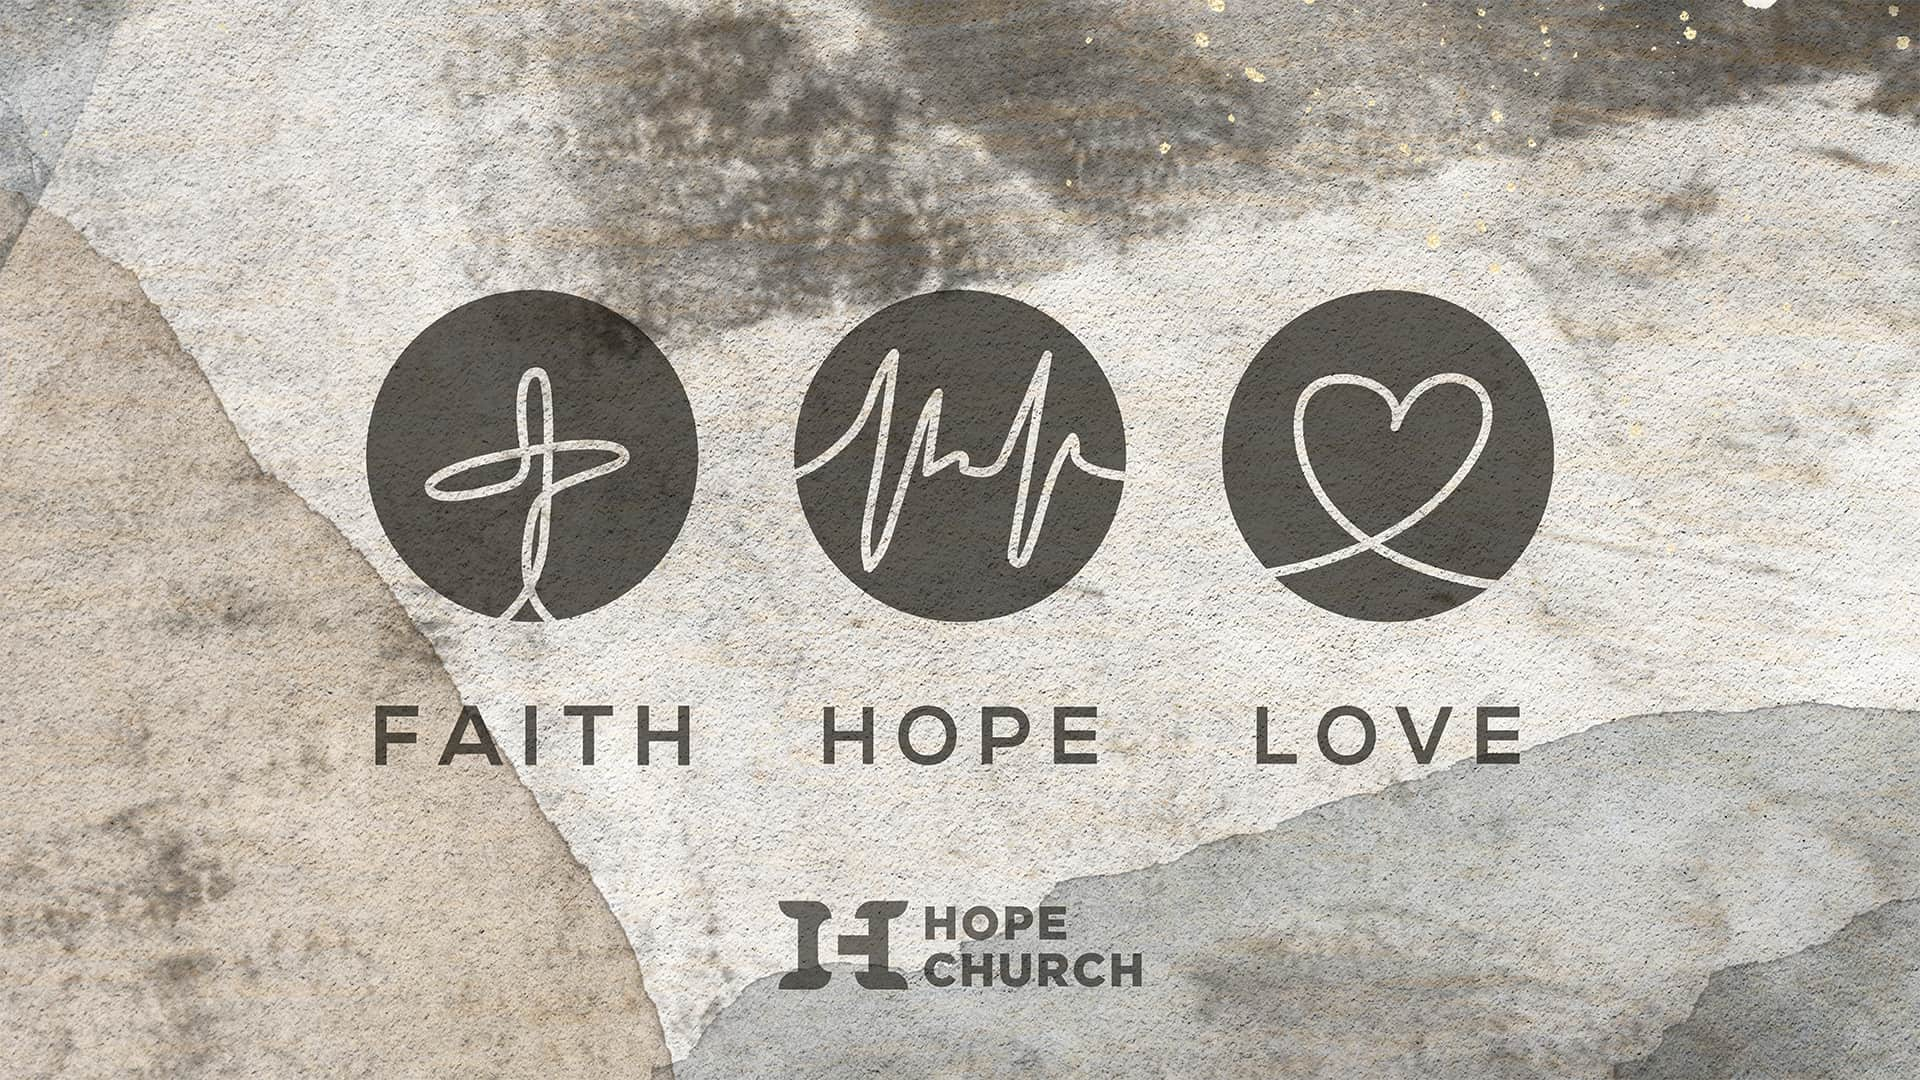 Poster for Hope Church Faith, Hope and Love Message Series